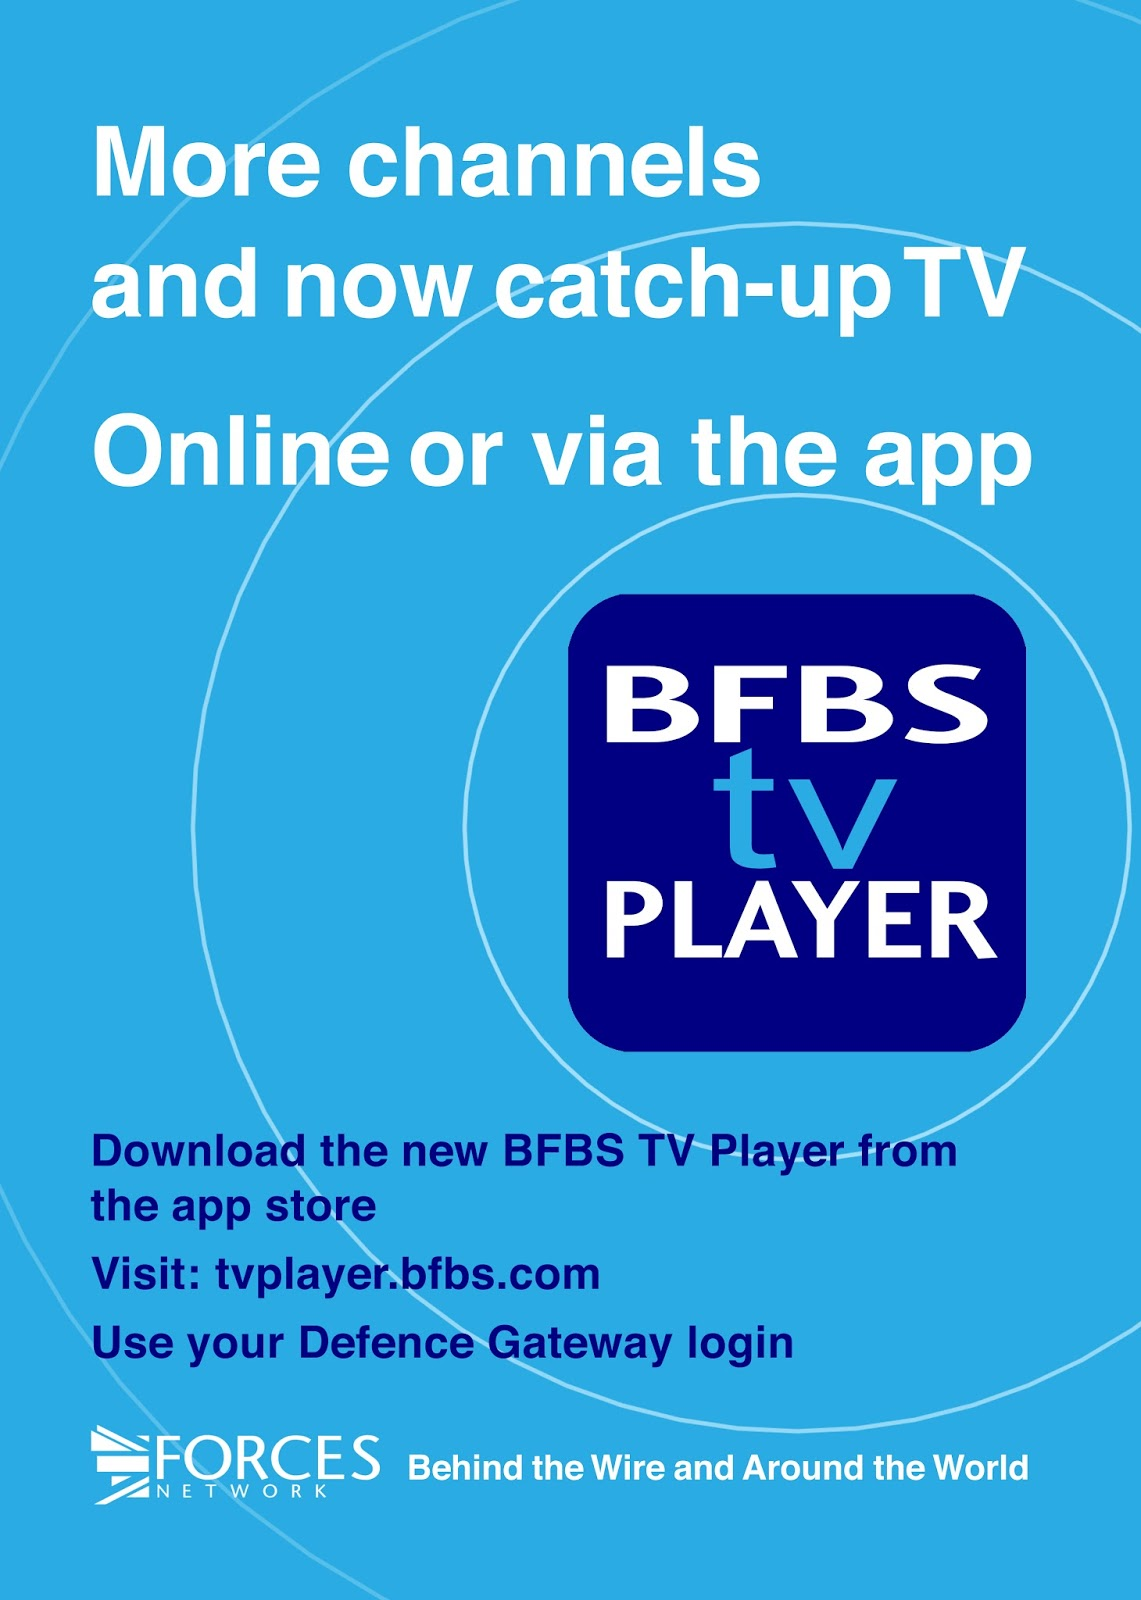 BFG HIVE: Login to Defence Gateway, and watch BFBS streamed over the ...